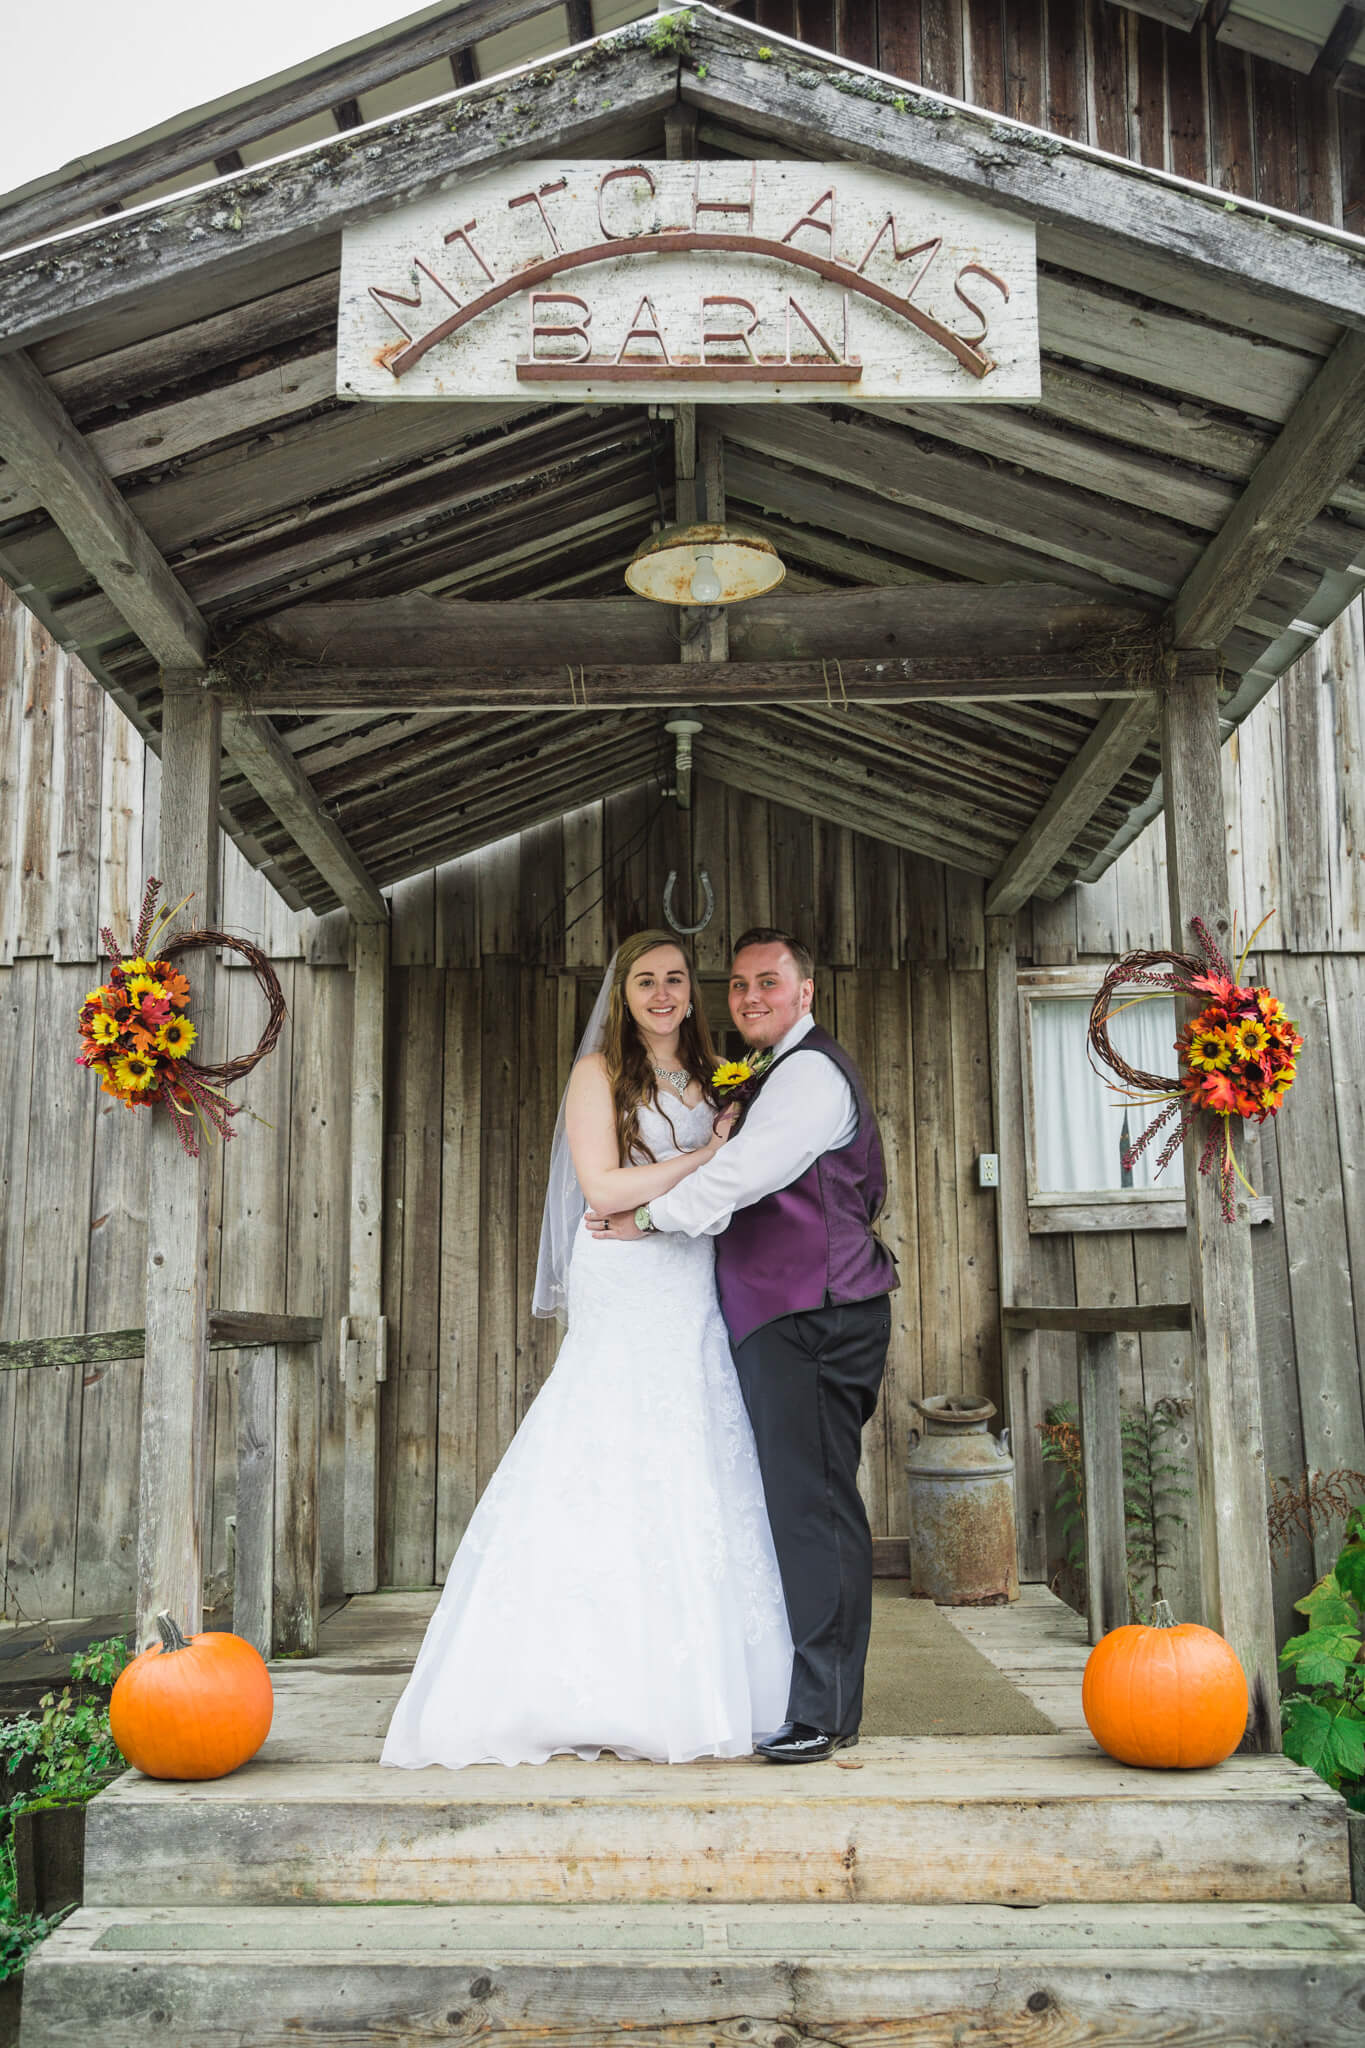 Mitcham's Barn Wedding-191.JPG